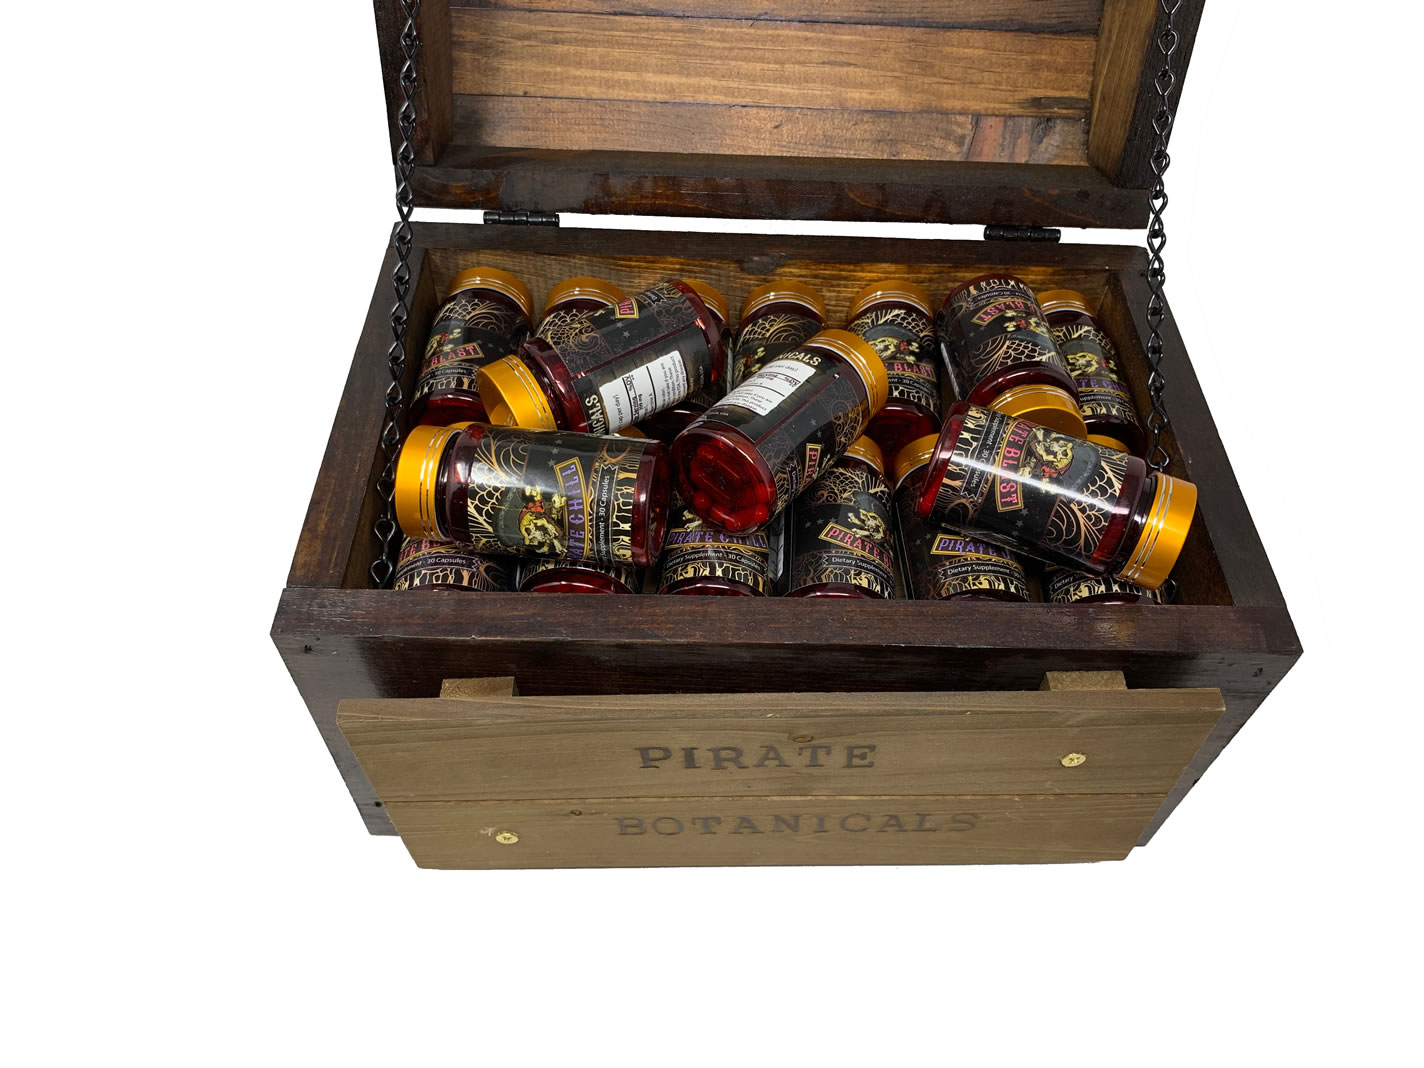 Full Pirate Botanicals Display Chest